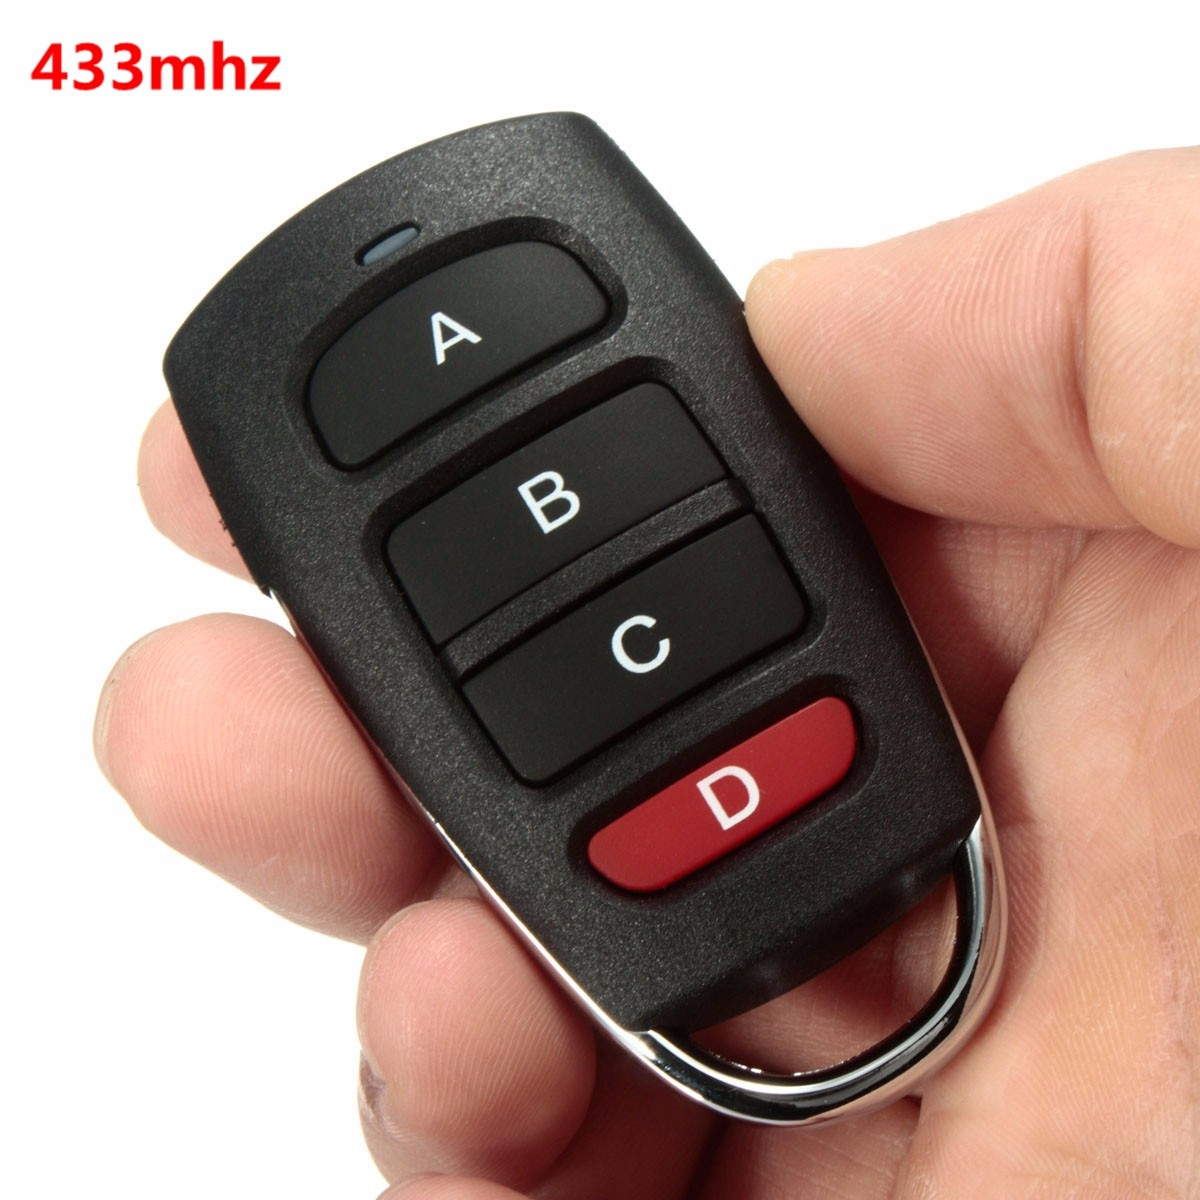 Universal 4 Channel 433mhz Wireless Remote Control Copy Cloning Electric Garage Door Security Alarm Controller Key Fob Car Keys(China (Mainland))